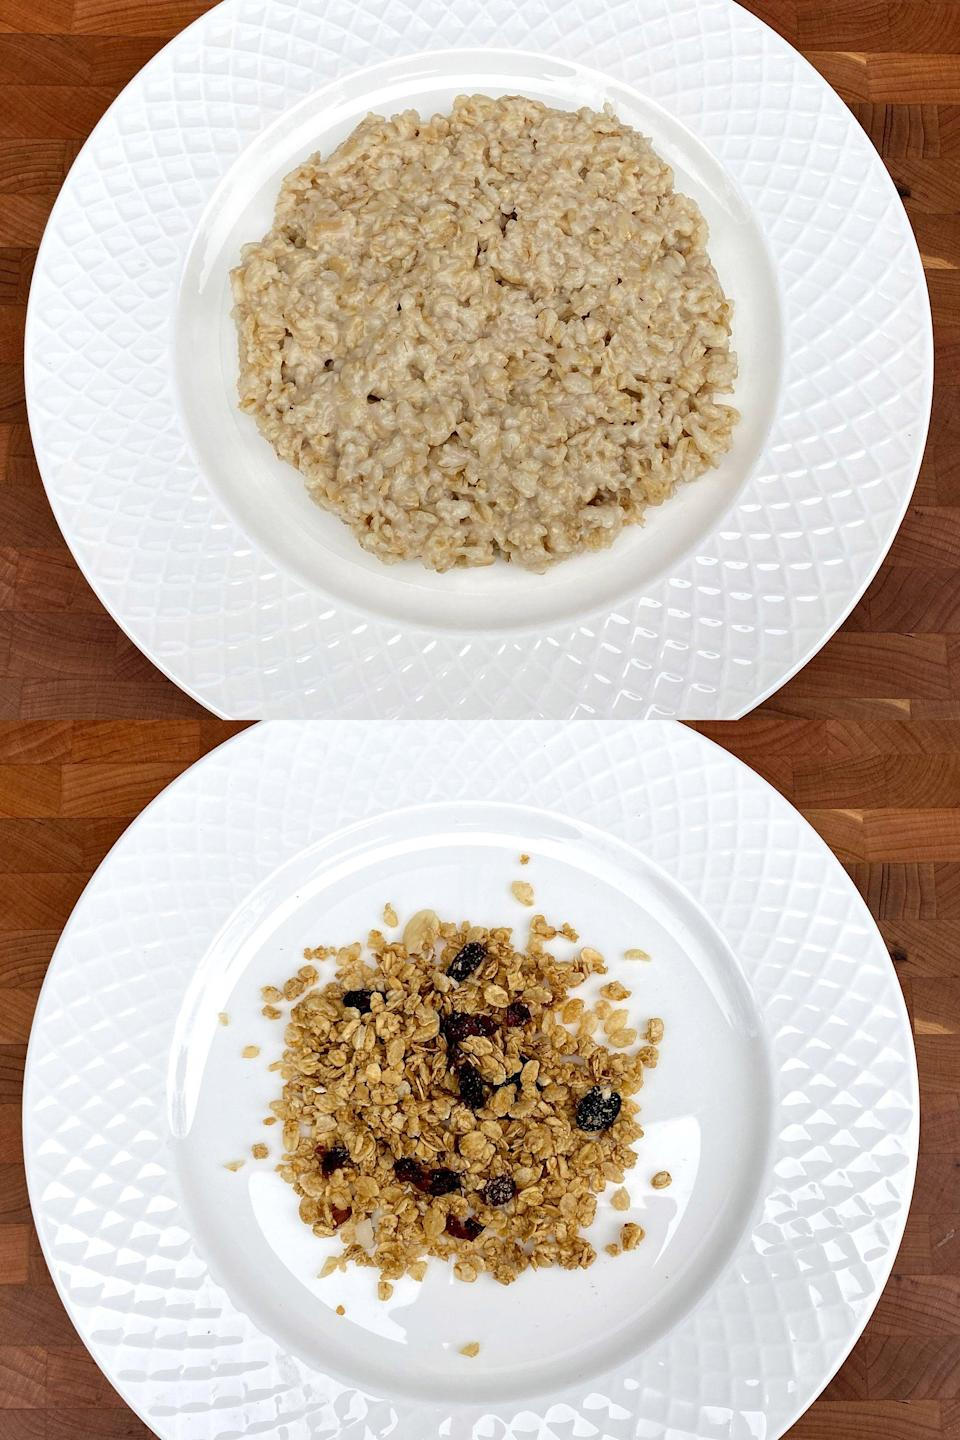 <p>You can spoon into 1 1/2 cups of cooked oatmeal or just 2/5 cup of fruit and nut granola, and that doesn't even include the cup of milk you'll add to it. That's such a small amount! I'd much rather fill up on the oatmeal flavored with some fruit.</p>